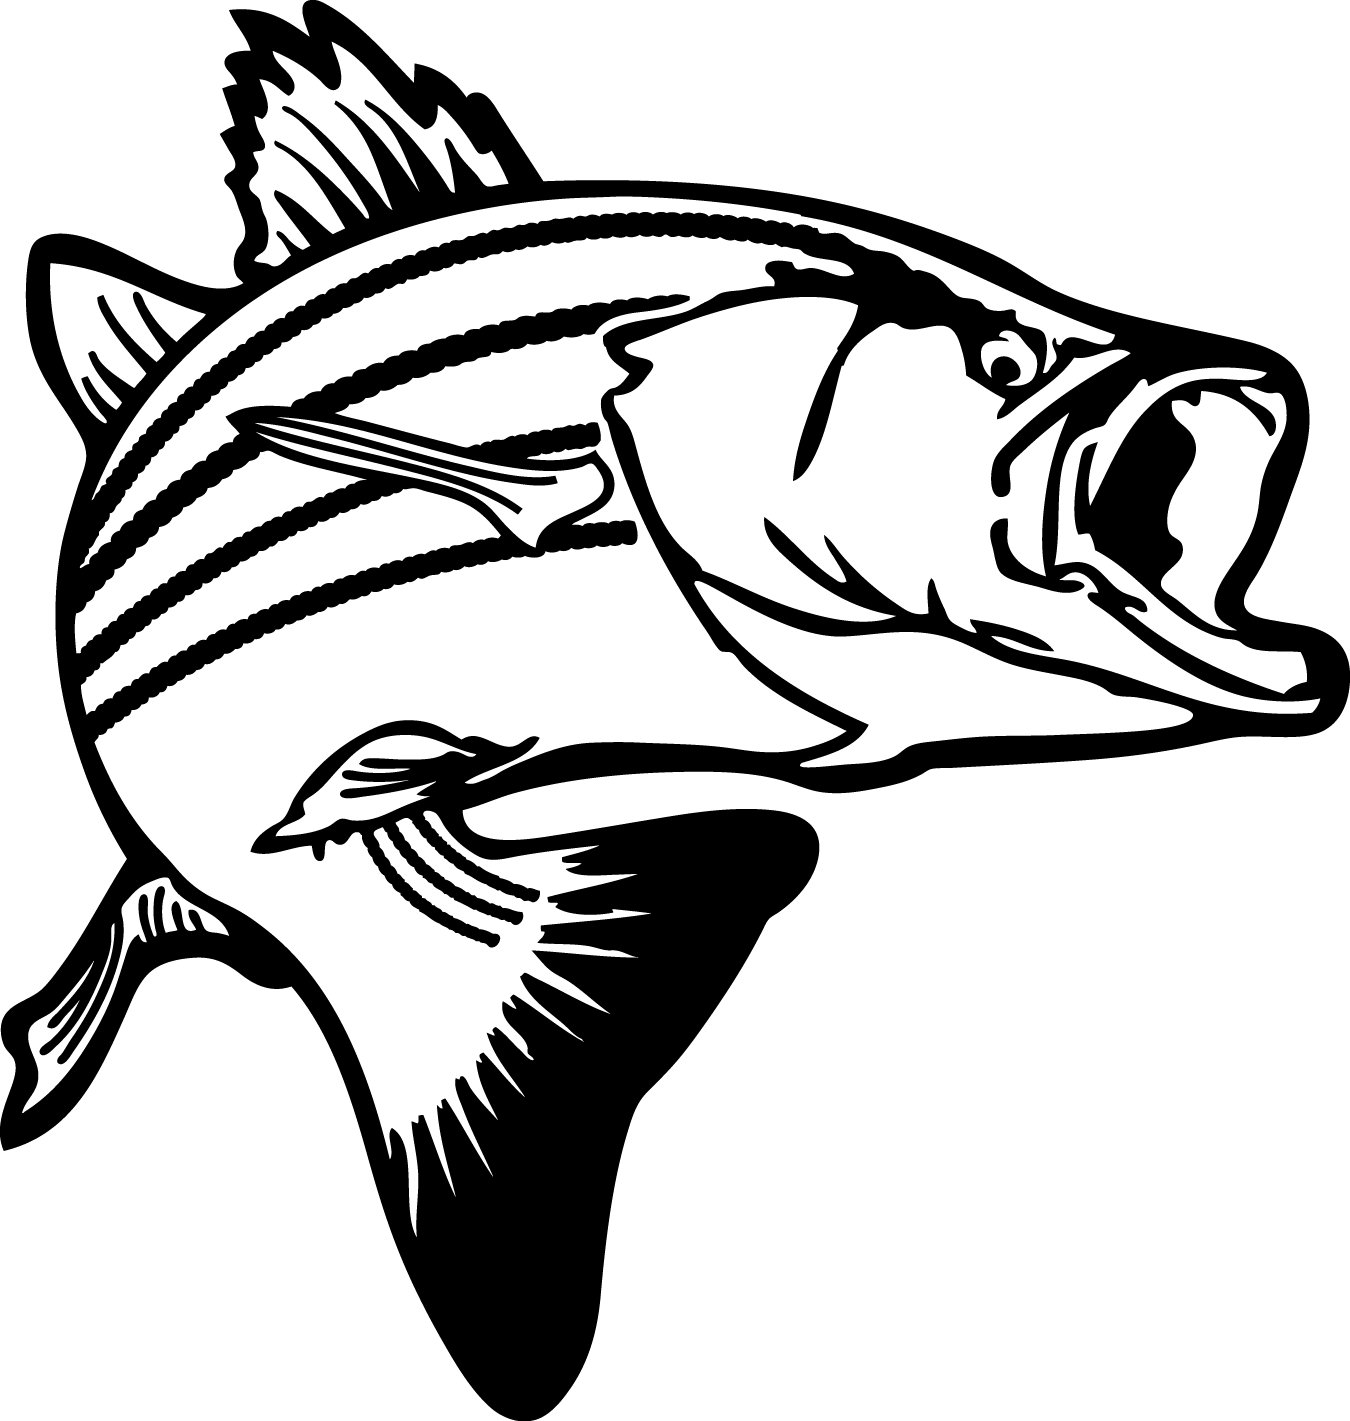 1350x1421 trout png black and white free trout black and white